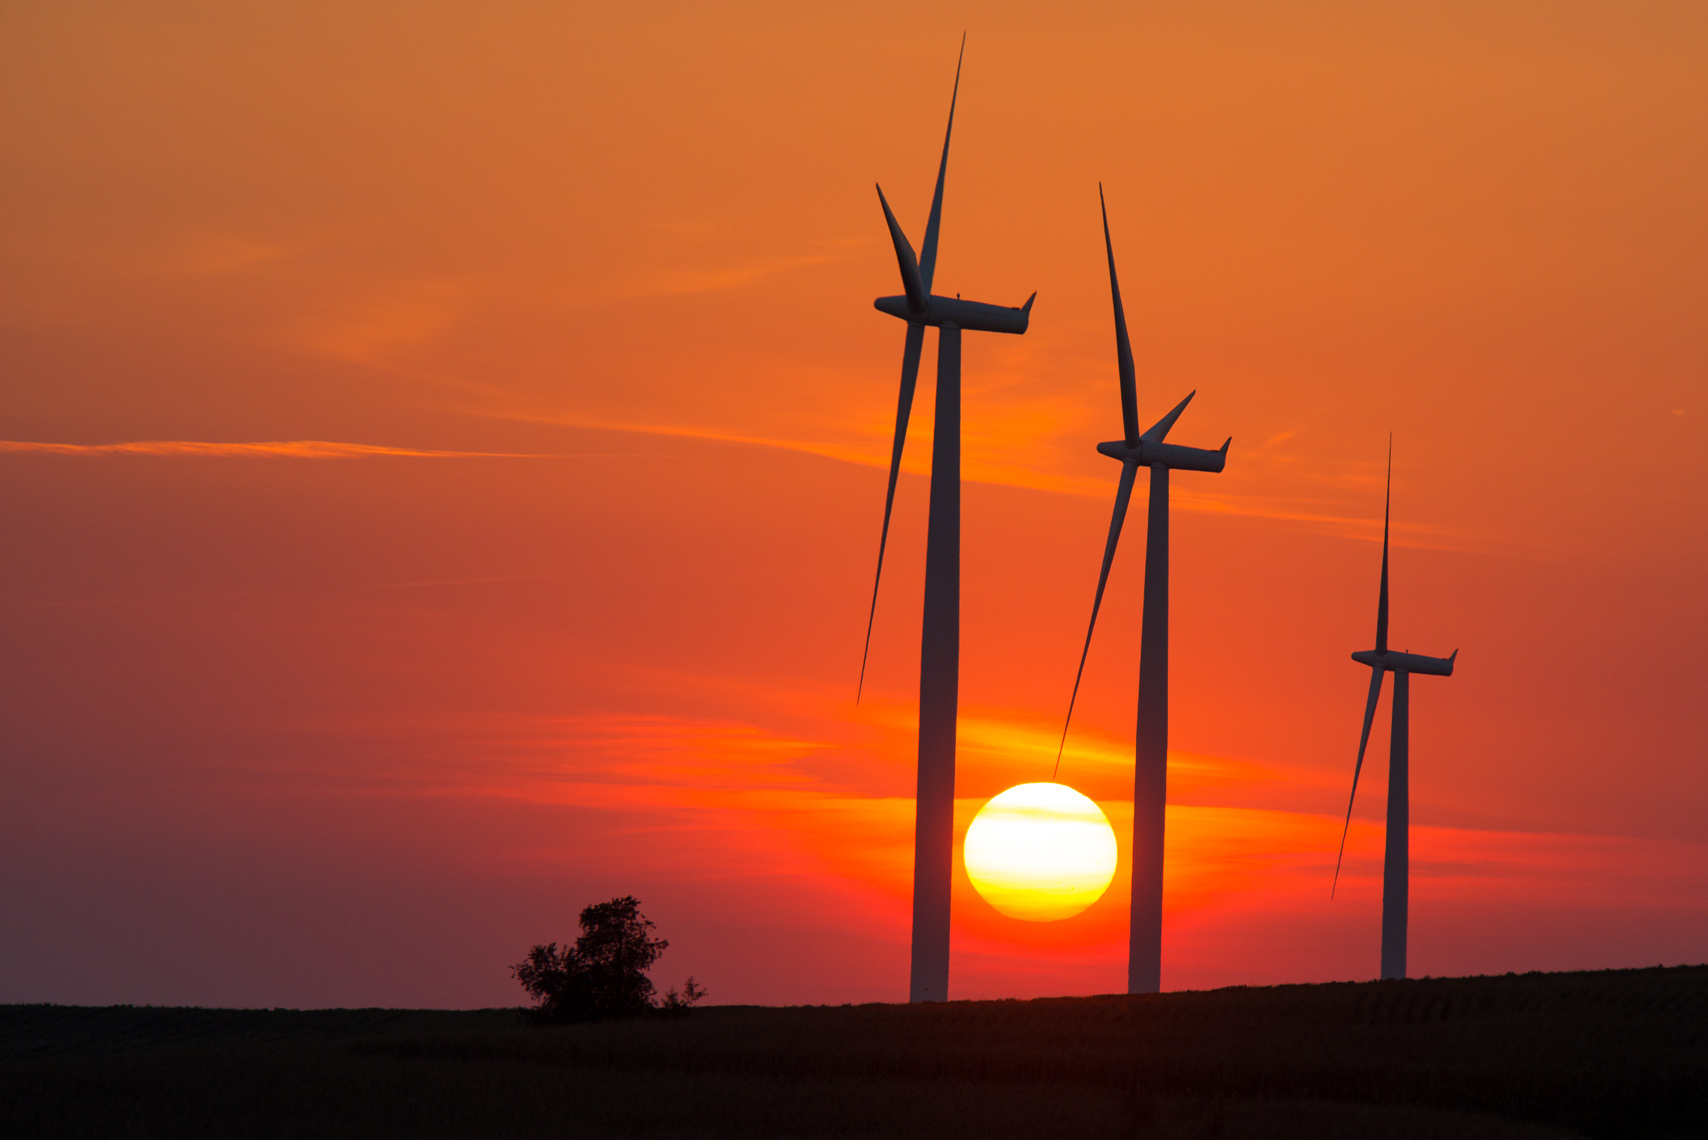 Iowa Wind Turbines at Sunset | Clean Energy Construction Photographs